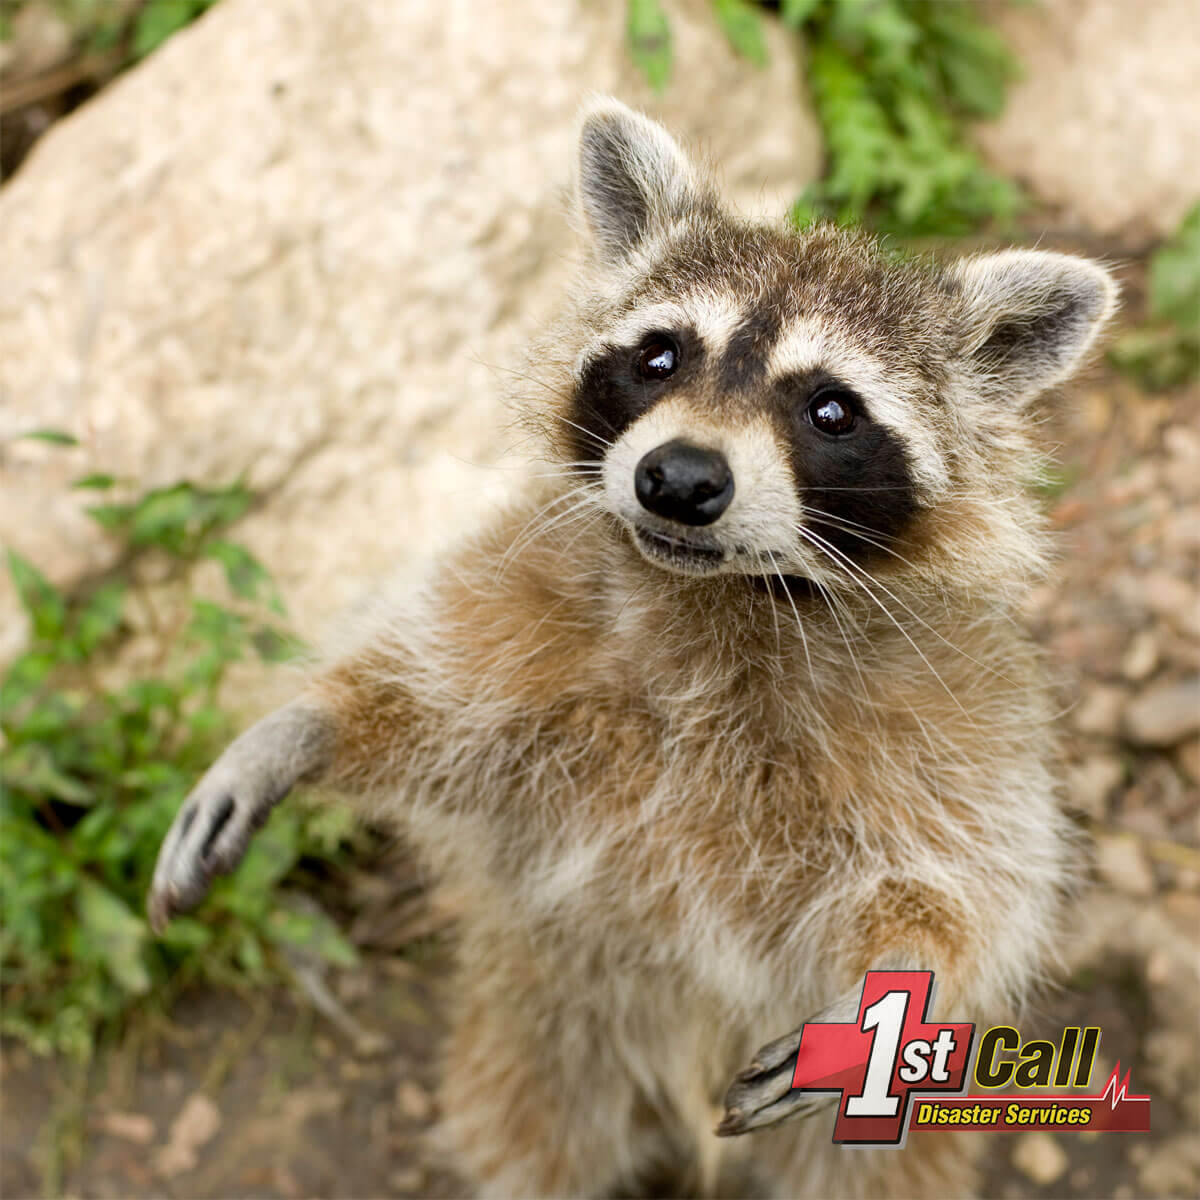 Raccoon Damage Cleanup in Elsmere, KY